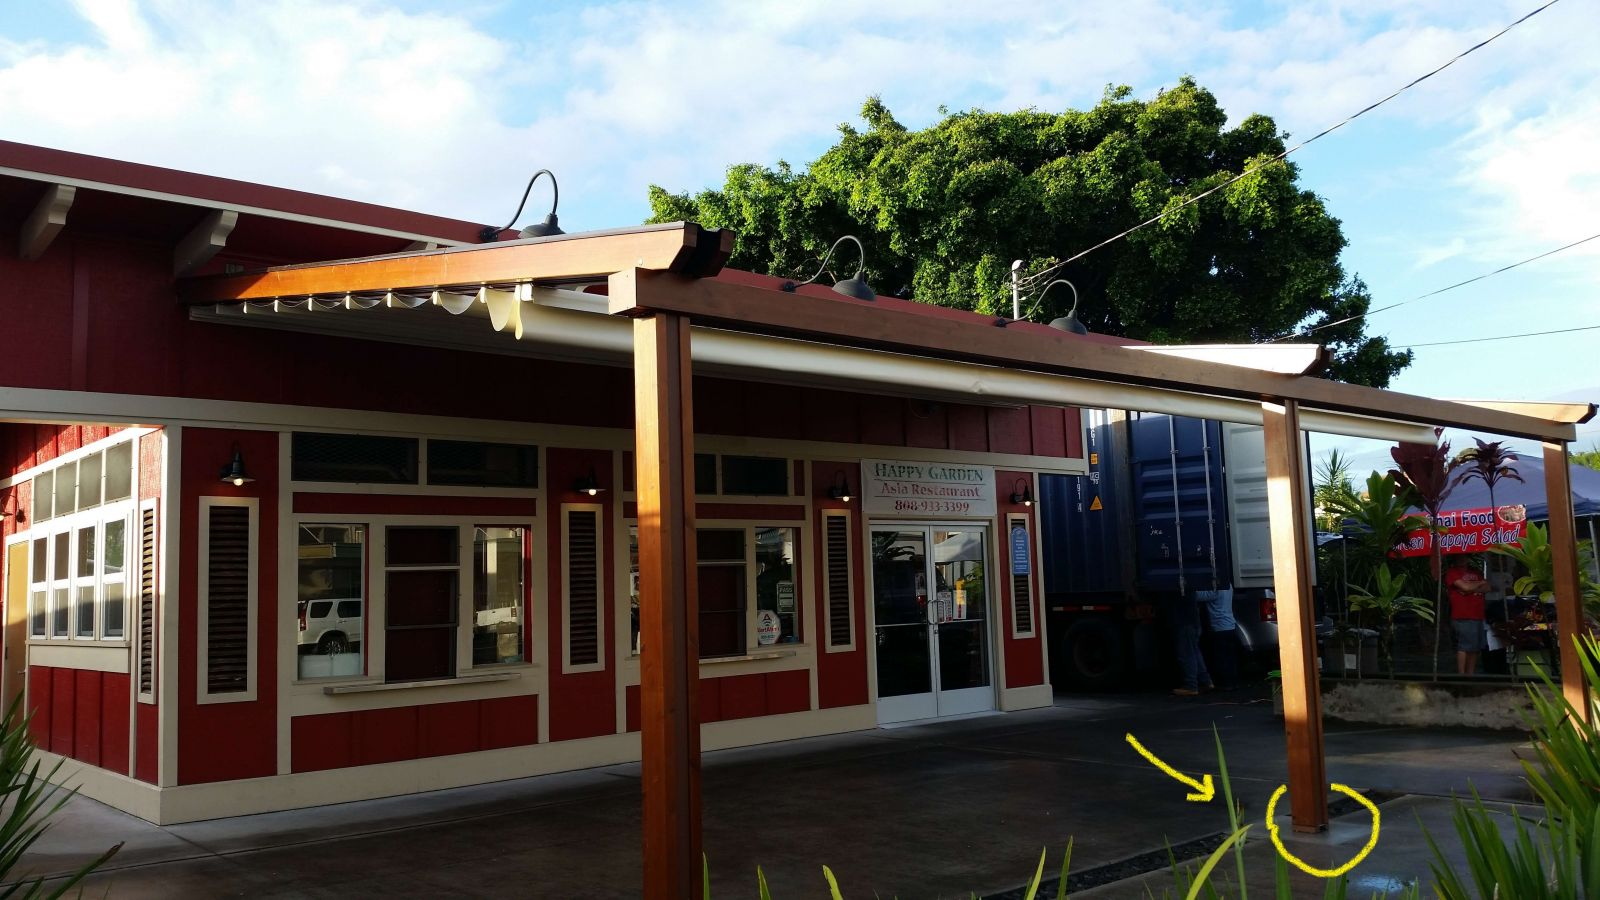 Wood Plus Retractable Fabric Pergola Commercial Sunair Awning